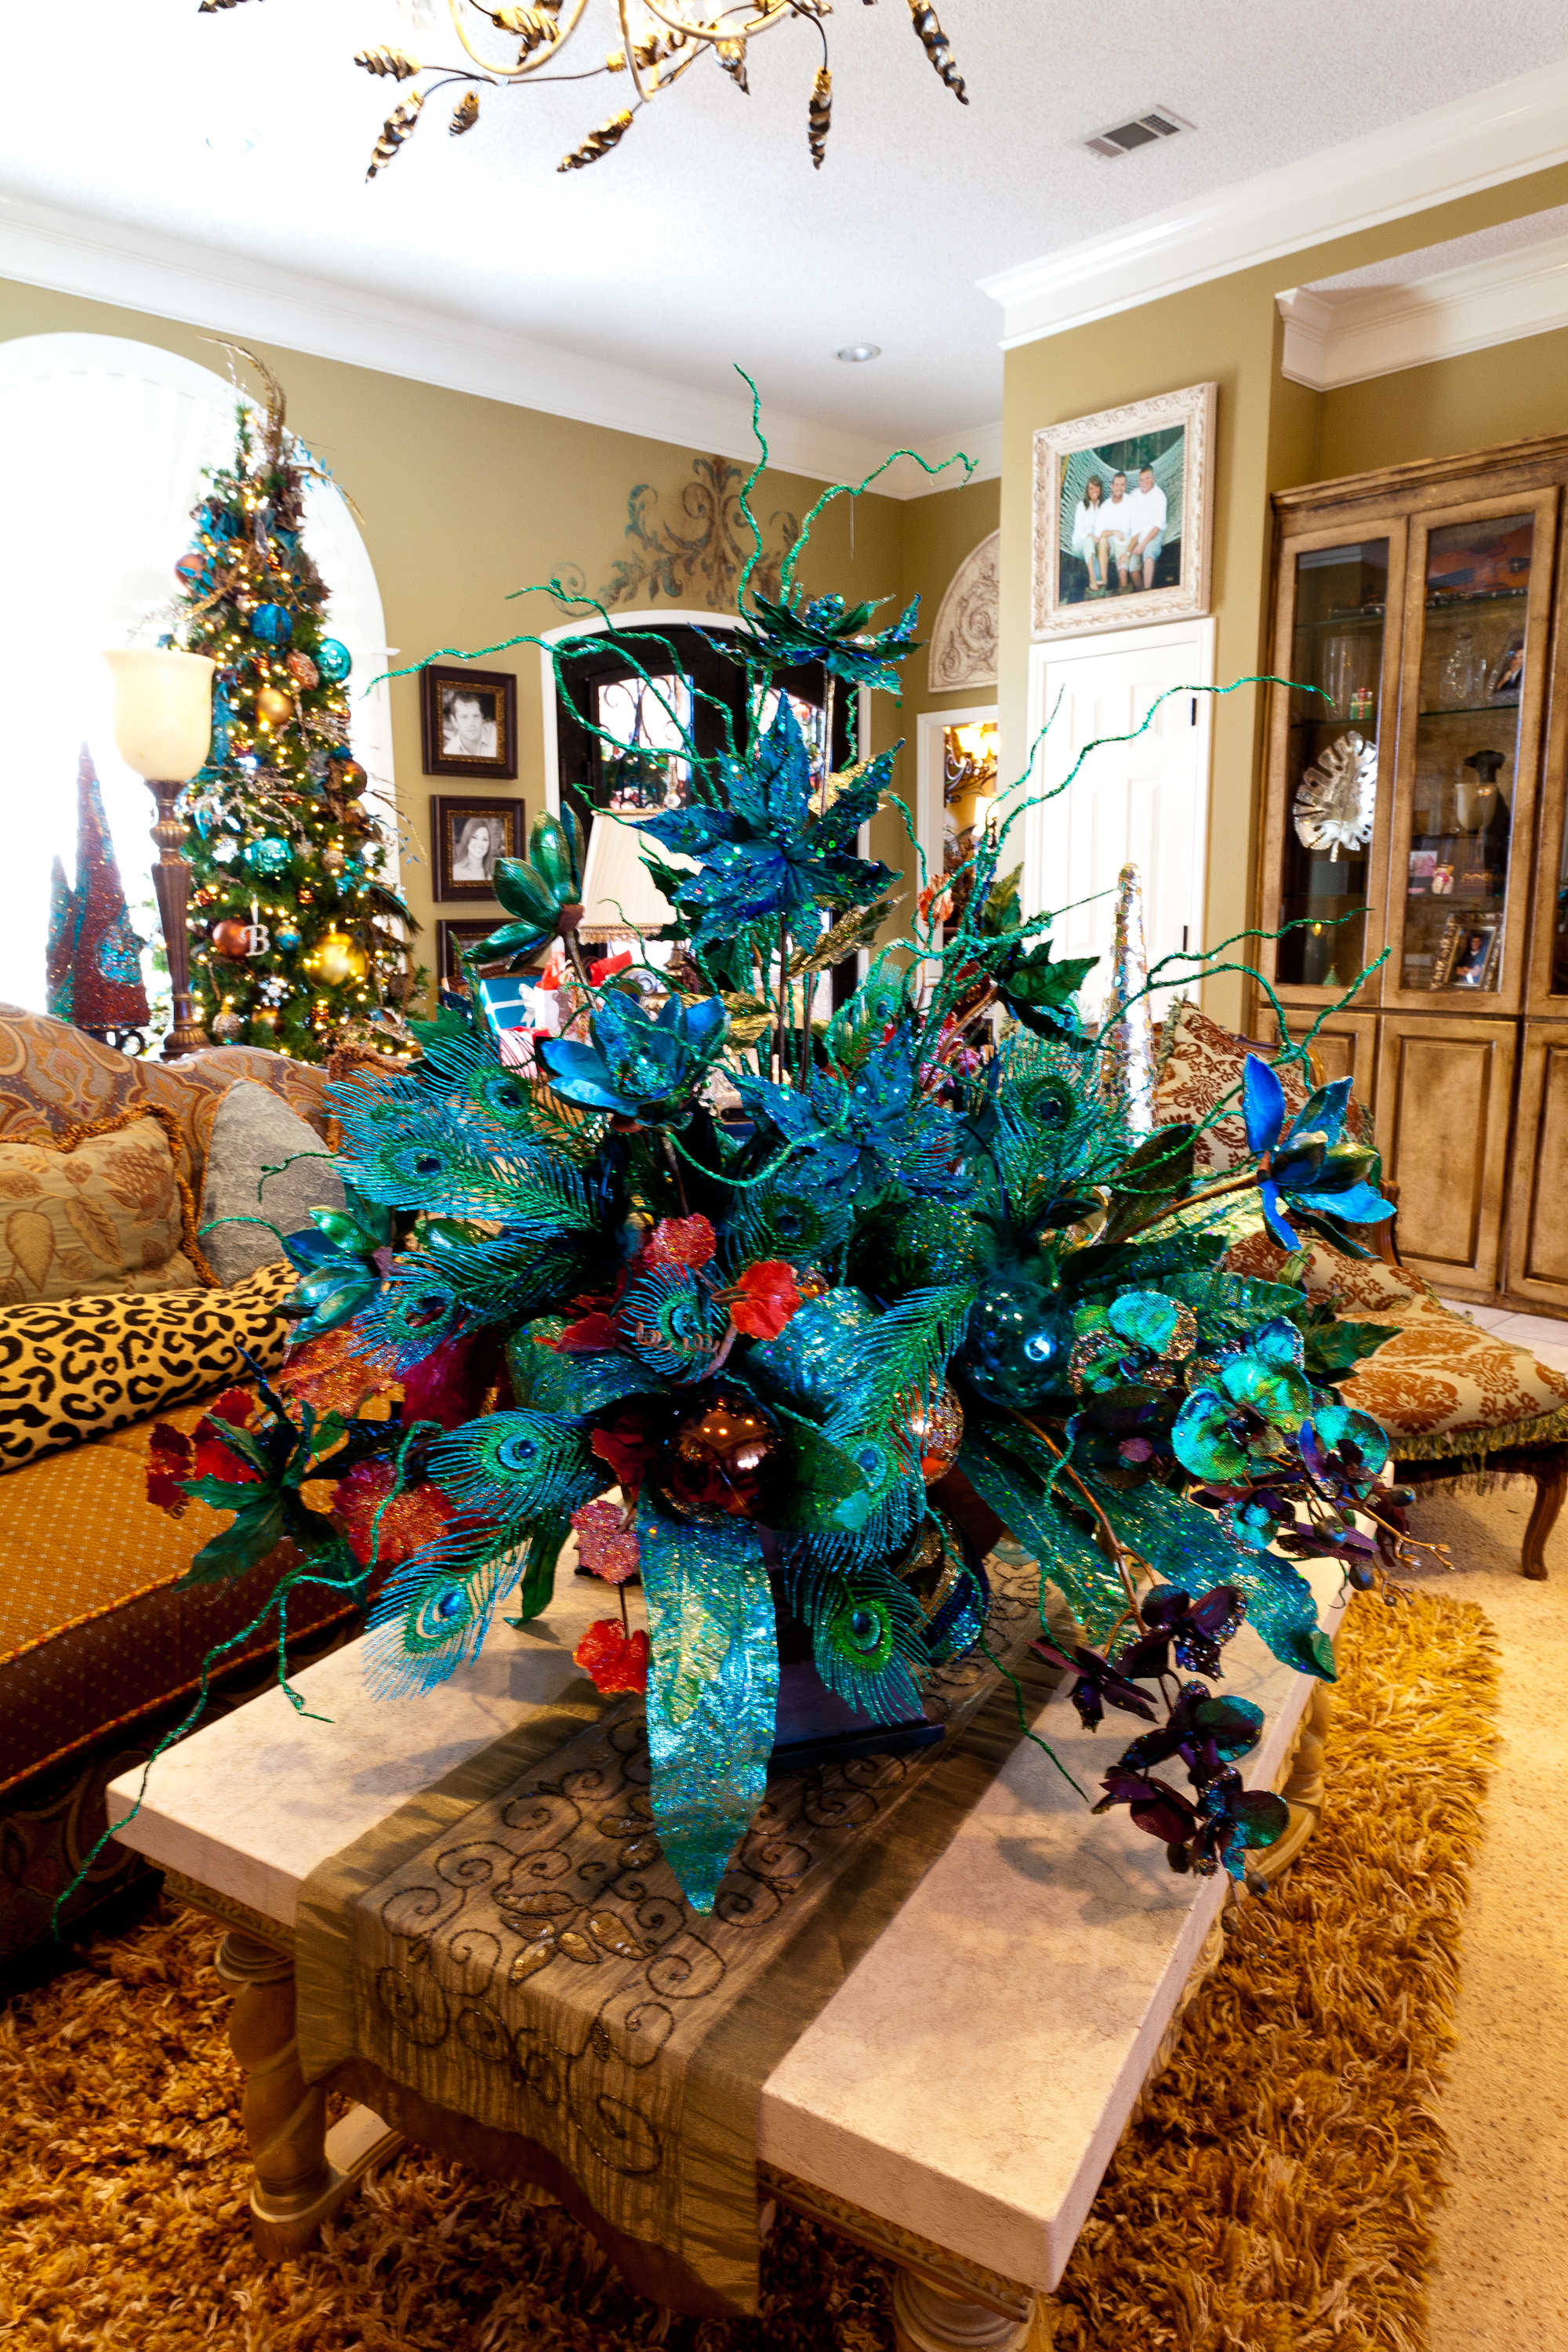 Show me a home dressed in peacock miss cayce 39 s for Home decorations peacock